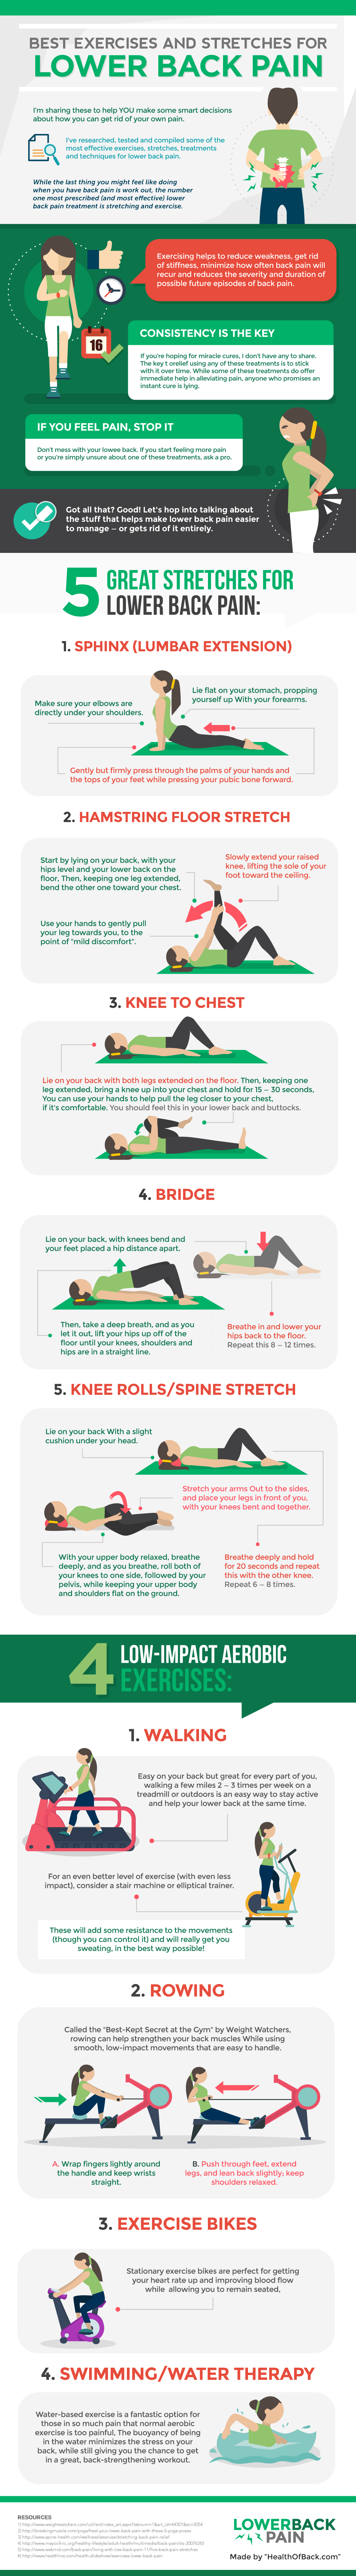 Best Exercises and Stretches for Lower Back Pain infographic